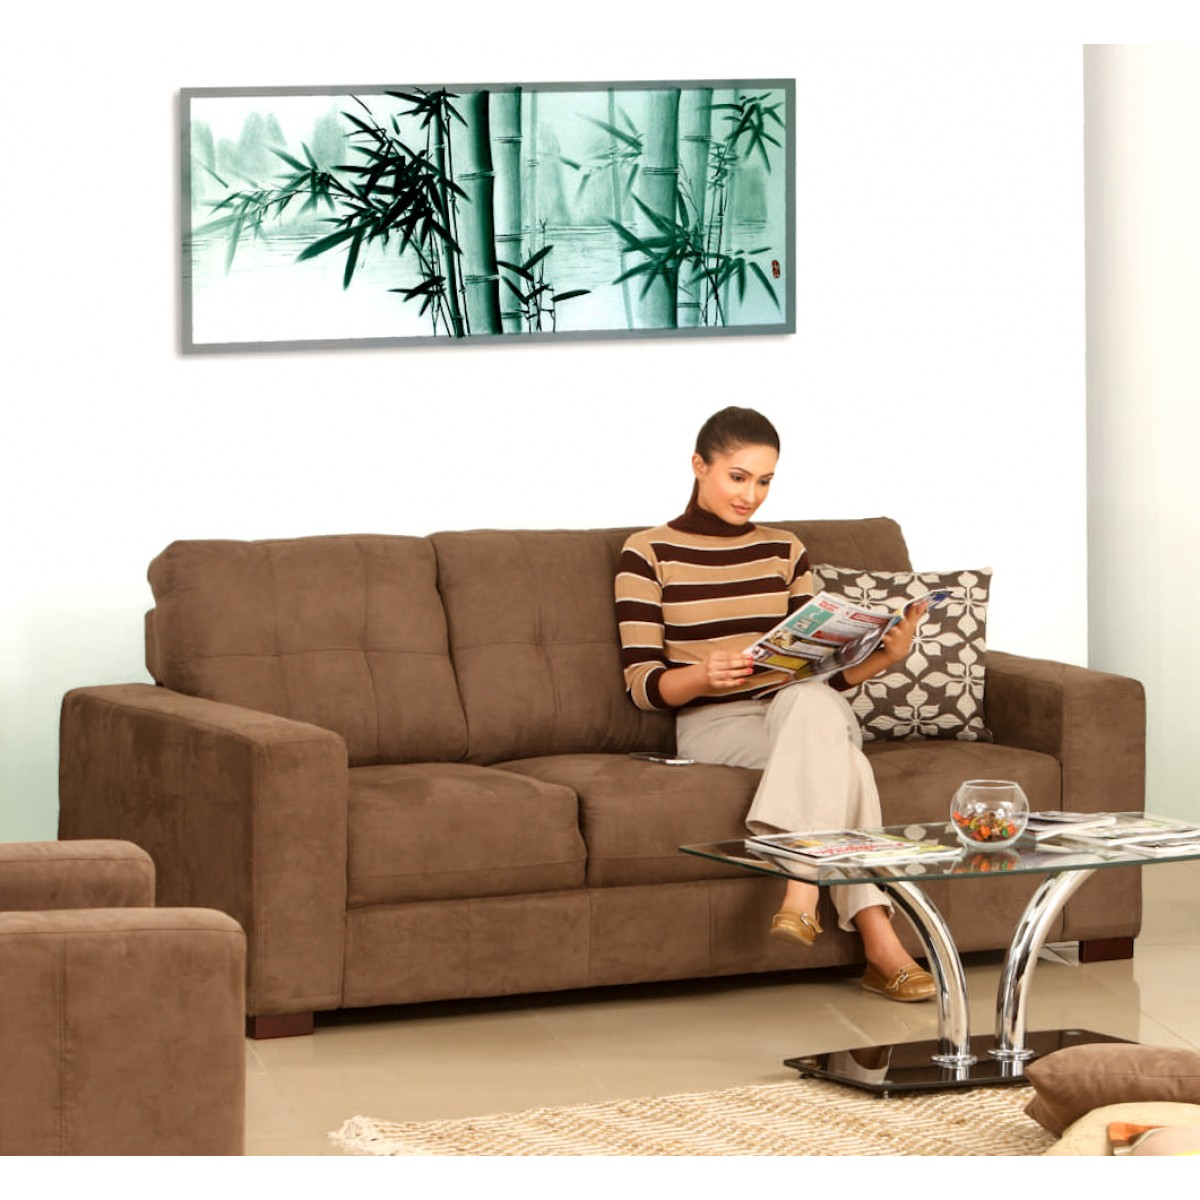 Damro Furniture Bangalore Photos Images And Wallpapers